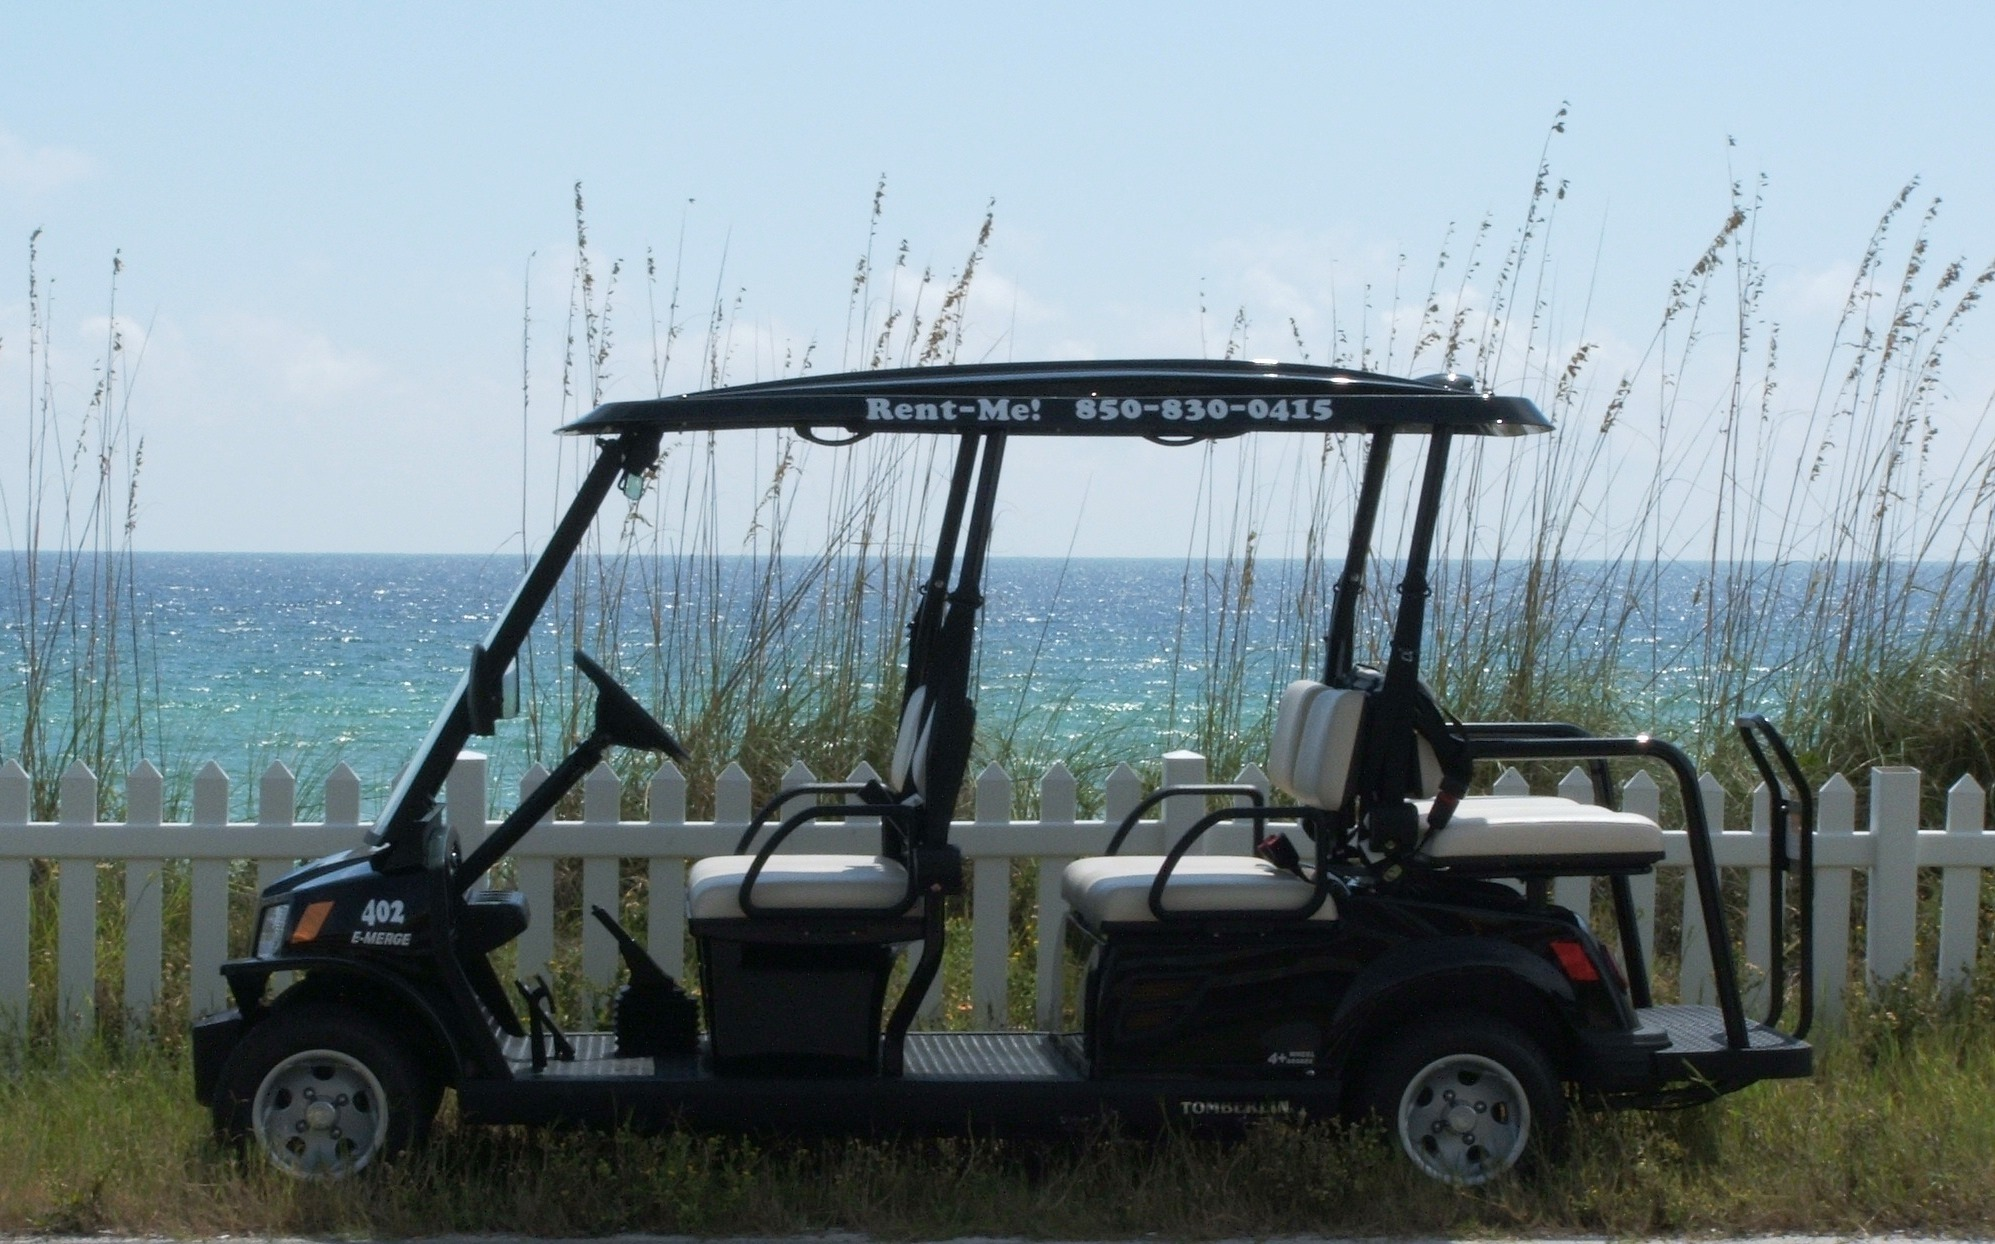 ECCO Motors Street Legal Cart Rentals on exciting golf, natural golf, lazy golf, peaceful golf, cute golf, captain kangaroo golf, playing golf,